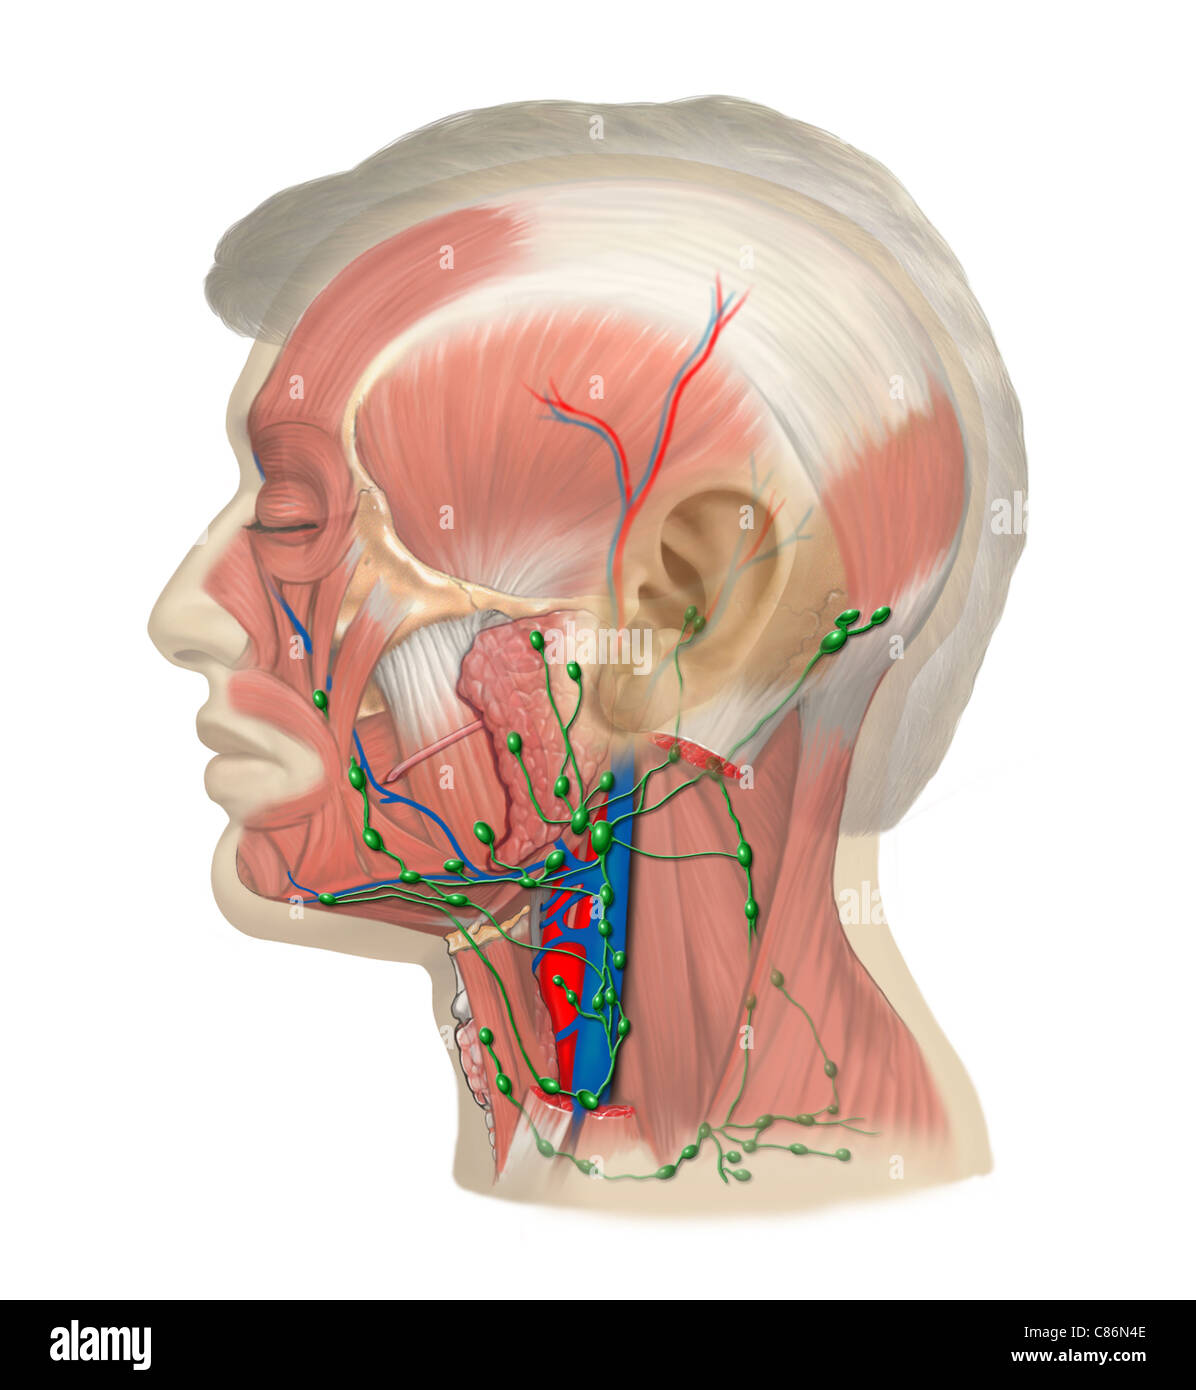 Lymph Vessels And Nodes Of The Head And Neck Stock Photo 39486286